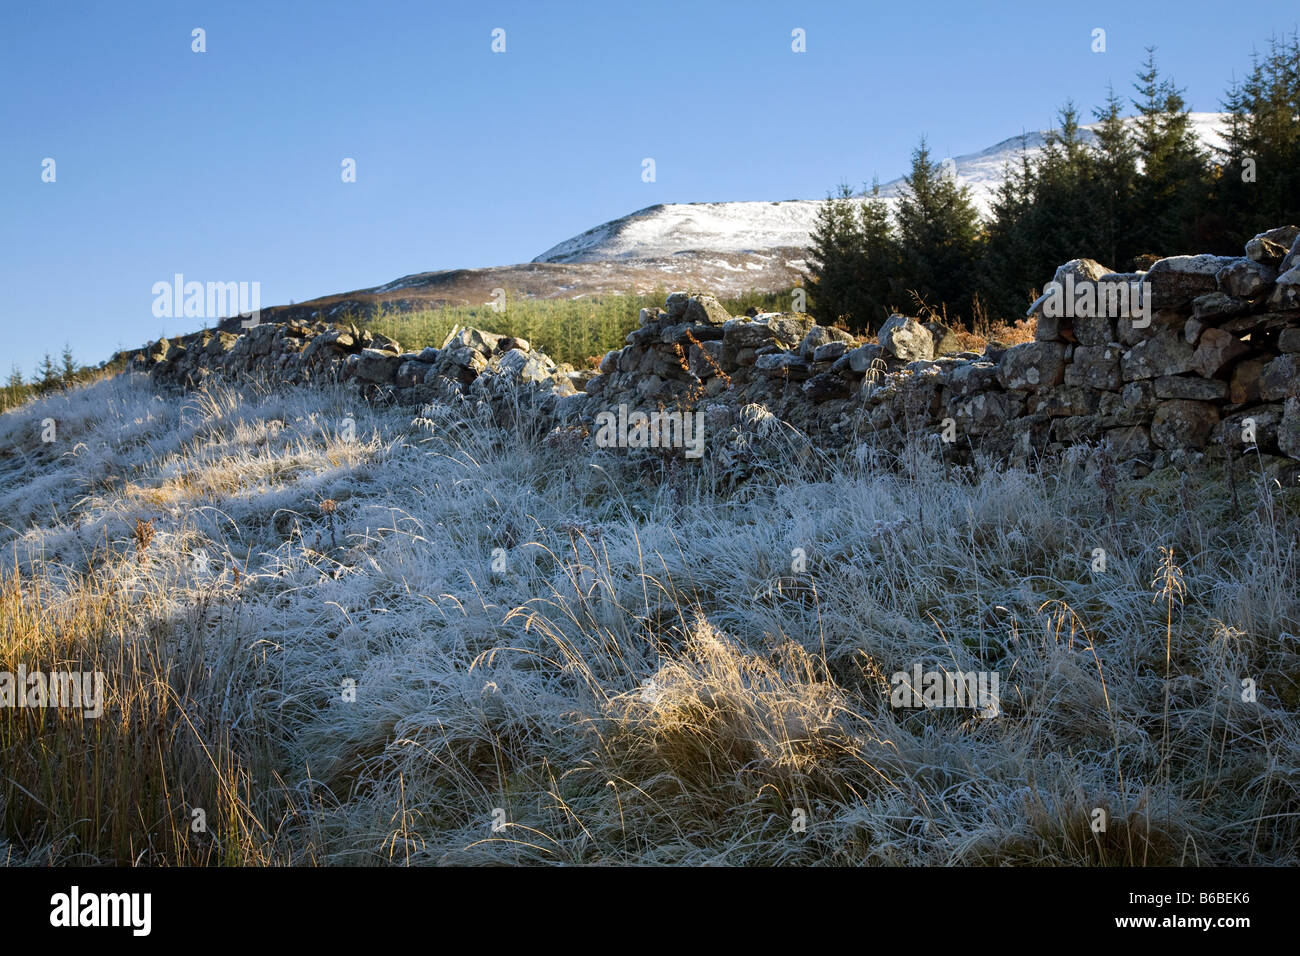 Frosted Grasses, winter, frosty, moorland landscape with stone wall or dyke, Braemar, Royal Deeside, Cairngorms - Stock Image